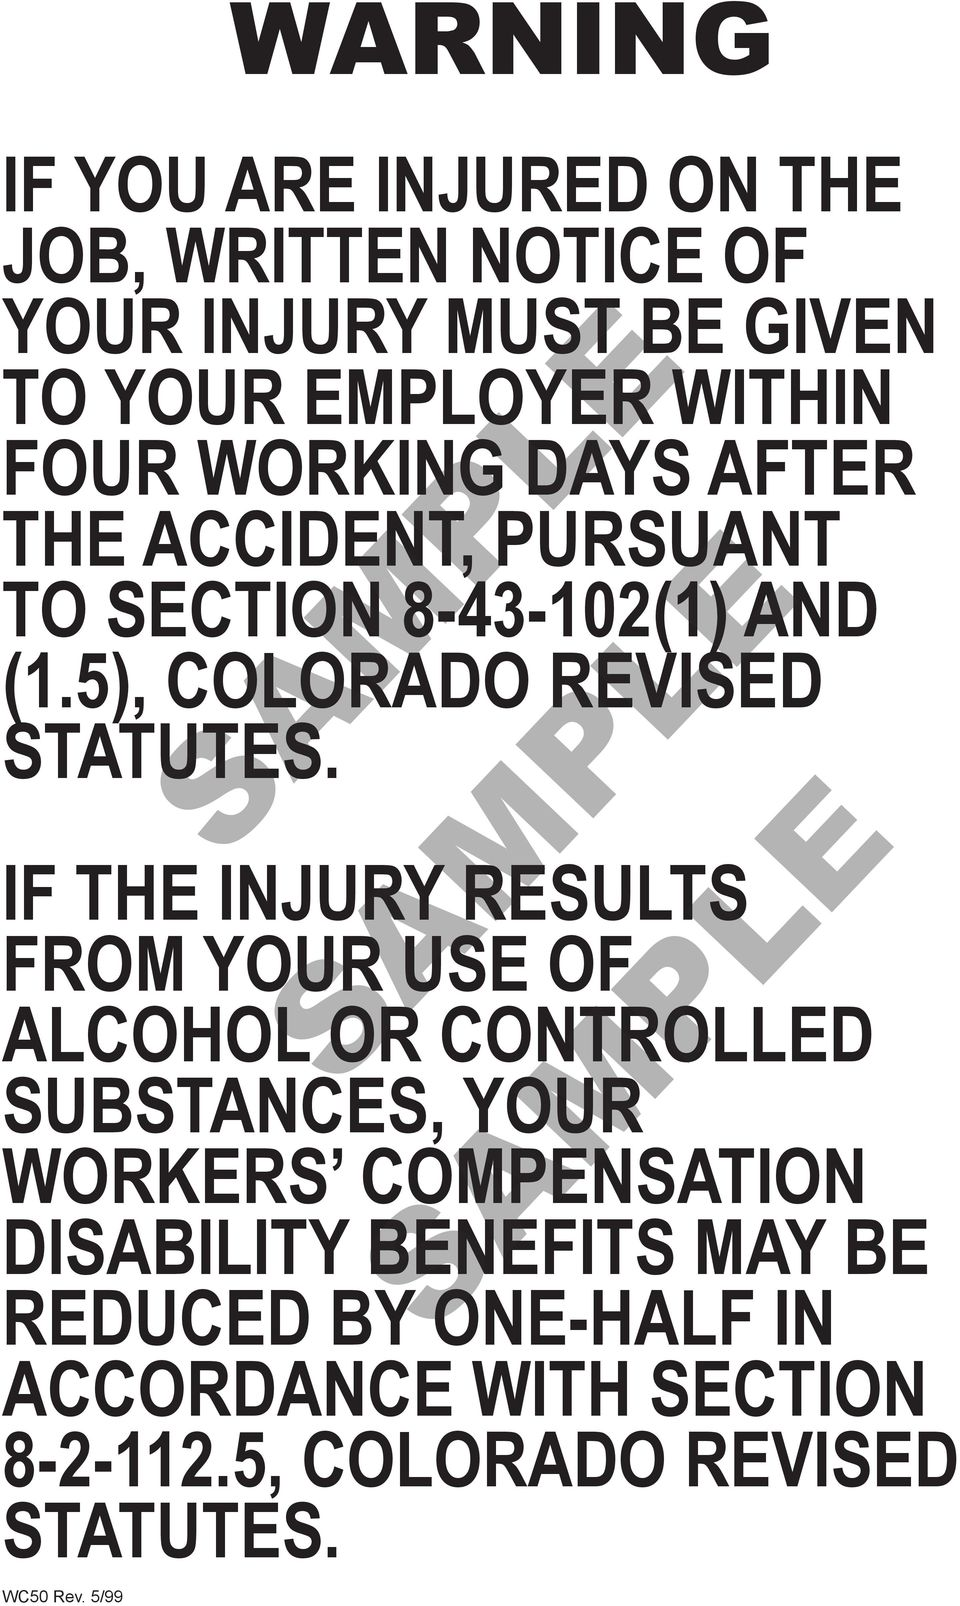 IF THE INJURY RESULTS FROM YOUR USE OF ALCOHOL OR CONTROLLED SUBSTANCES, YOUR WORKERS COMPENSATION DISABILITY